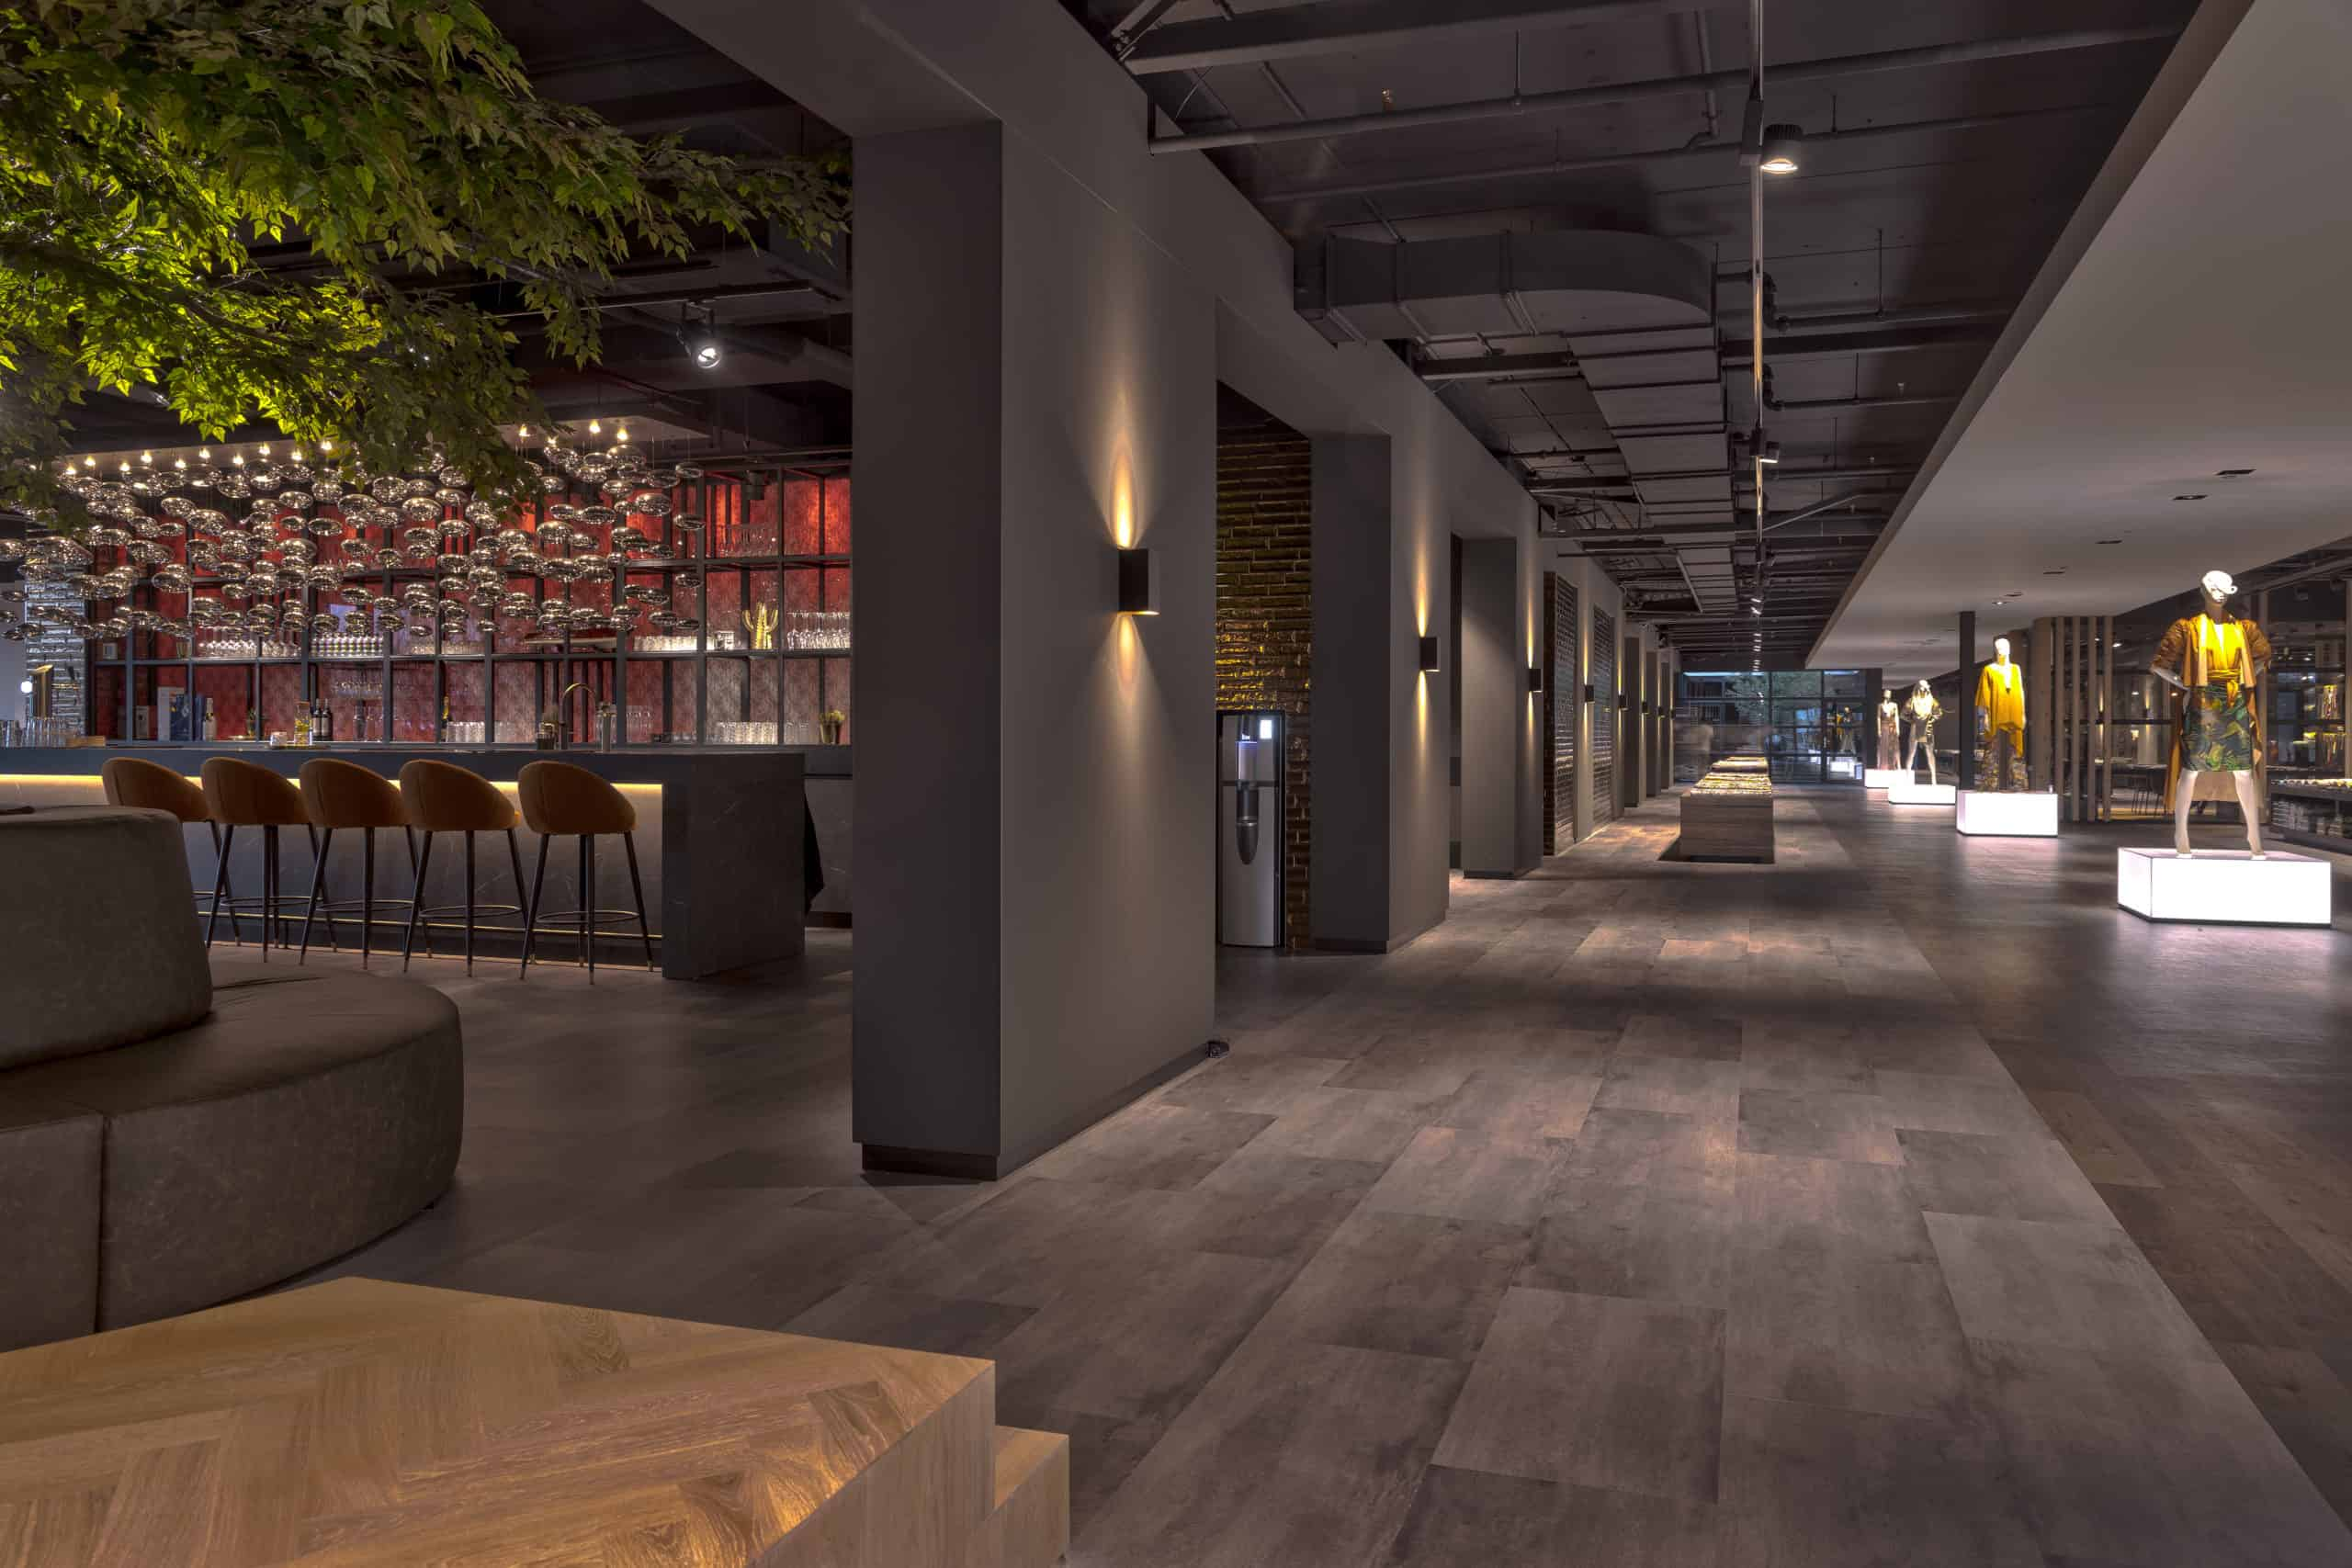 interieurarchitect Wildenberg ontwerp showroom Knipidee Almere bar wand etalagefiguren wsb maretti Dream iboma kerastone objectflor tarkett kopie